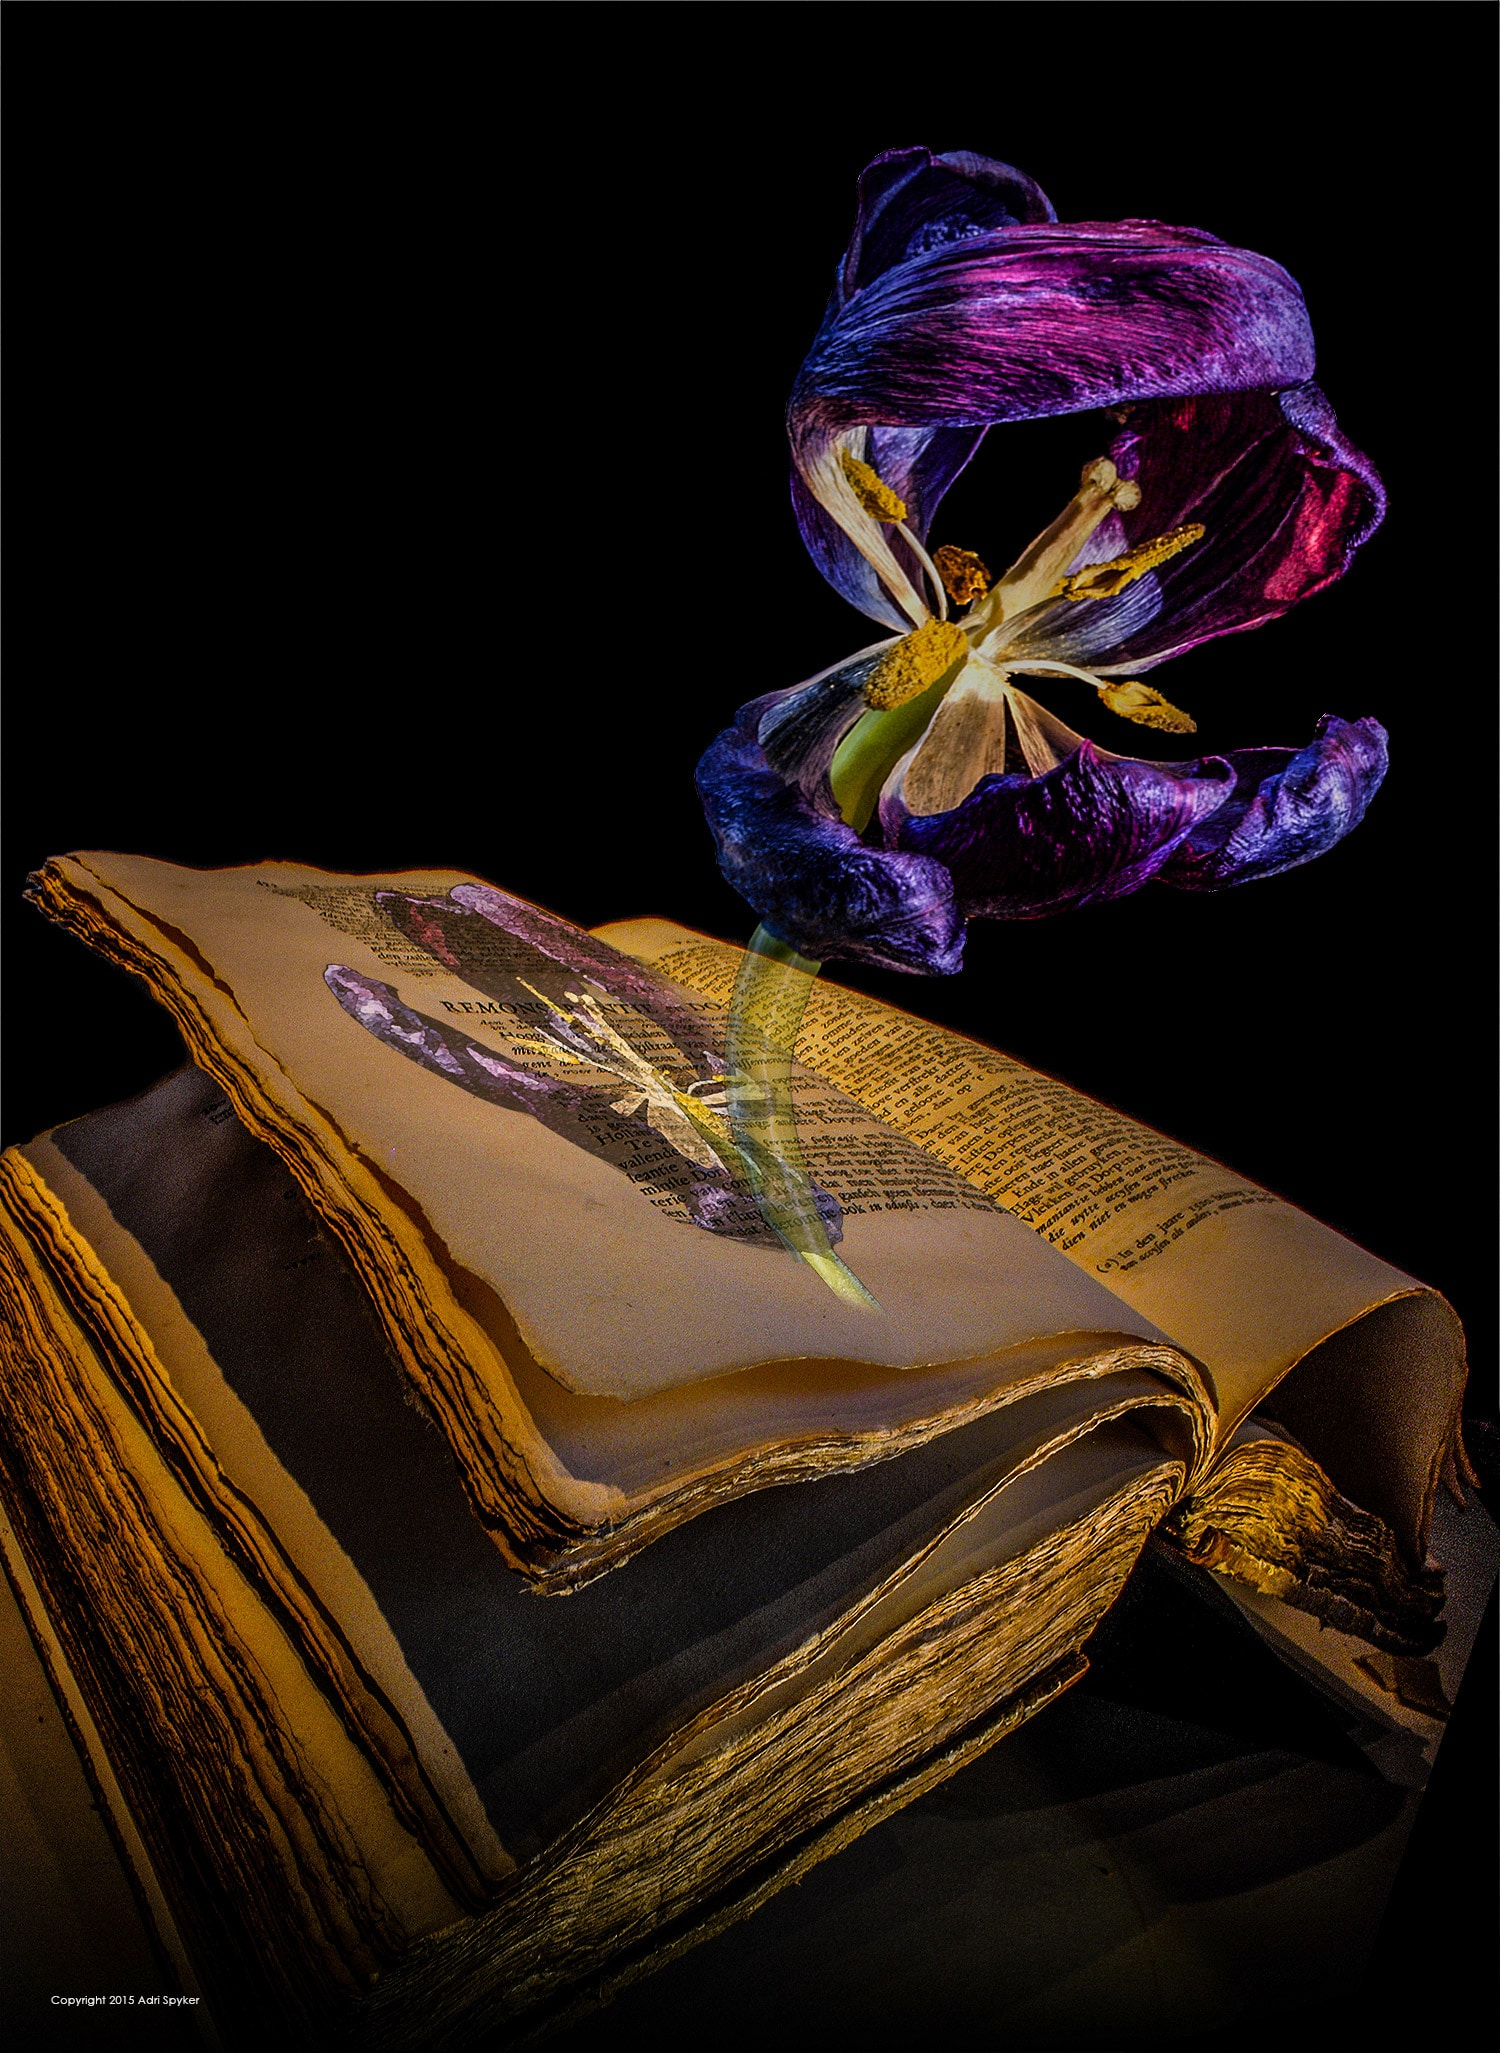 Photograph of an old book with a purple tulip on the page and another three dimensional tulip rising from the page.